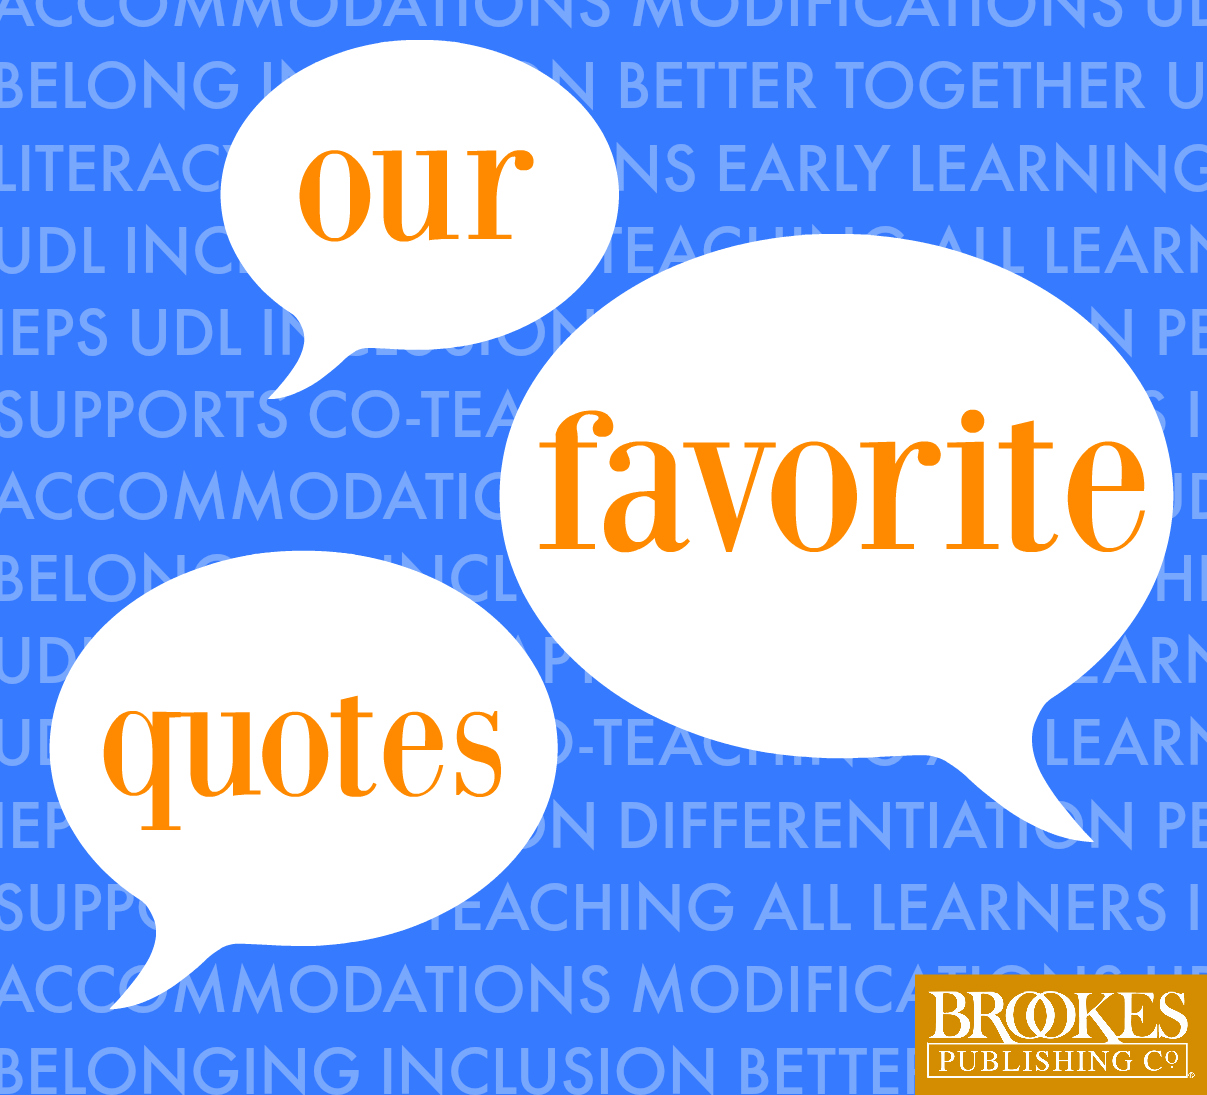 Brookes Publishing favorite quotes inclusion